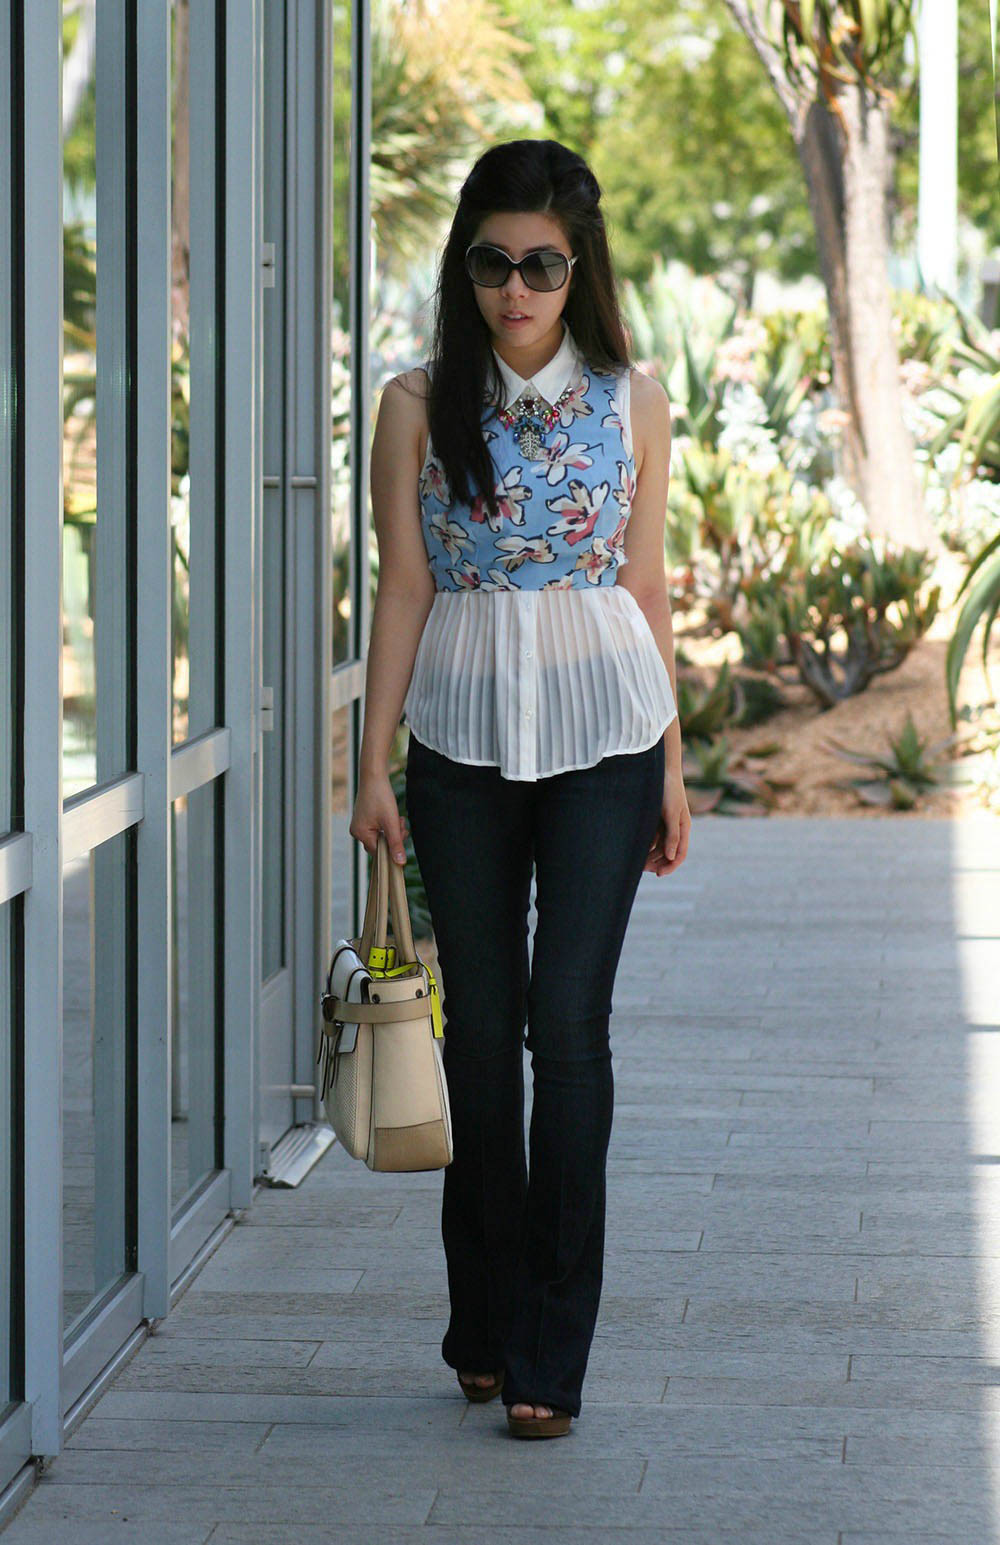 adrienne nguyen_invictus_what to wear with flare jeans_what to wear with straight legs jeans_tjmaxx_Maxxinista